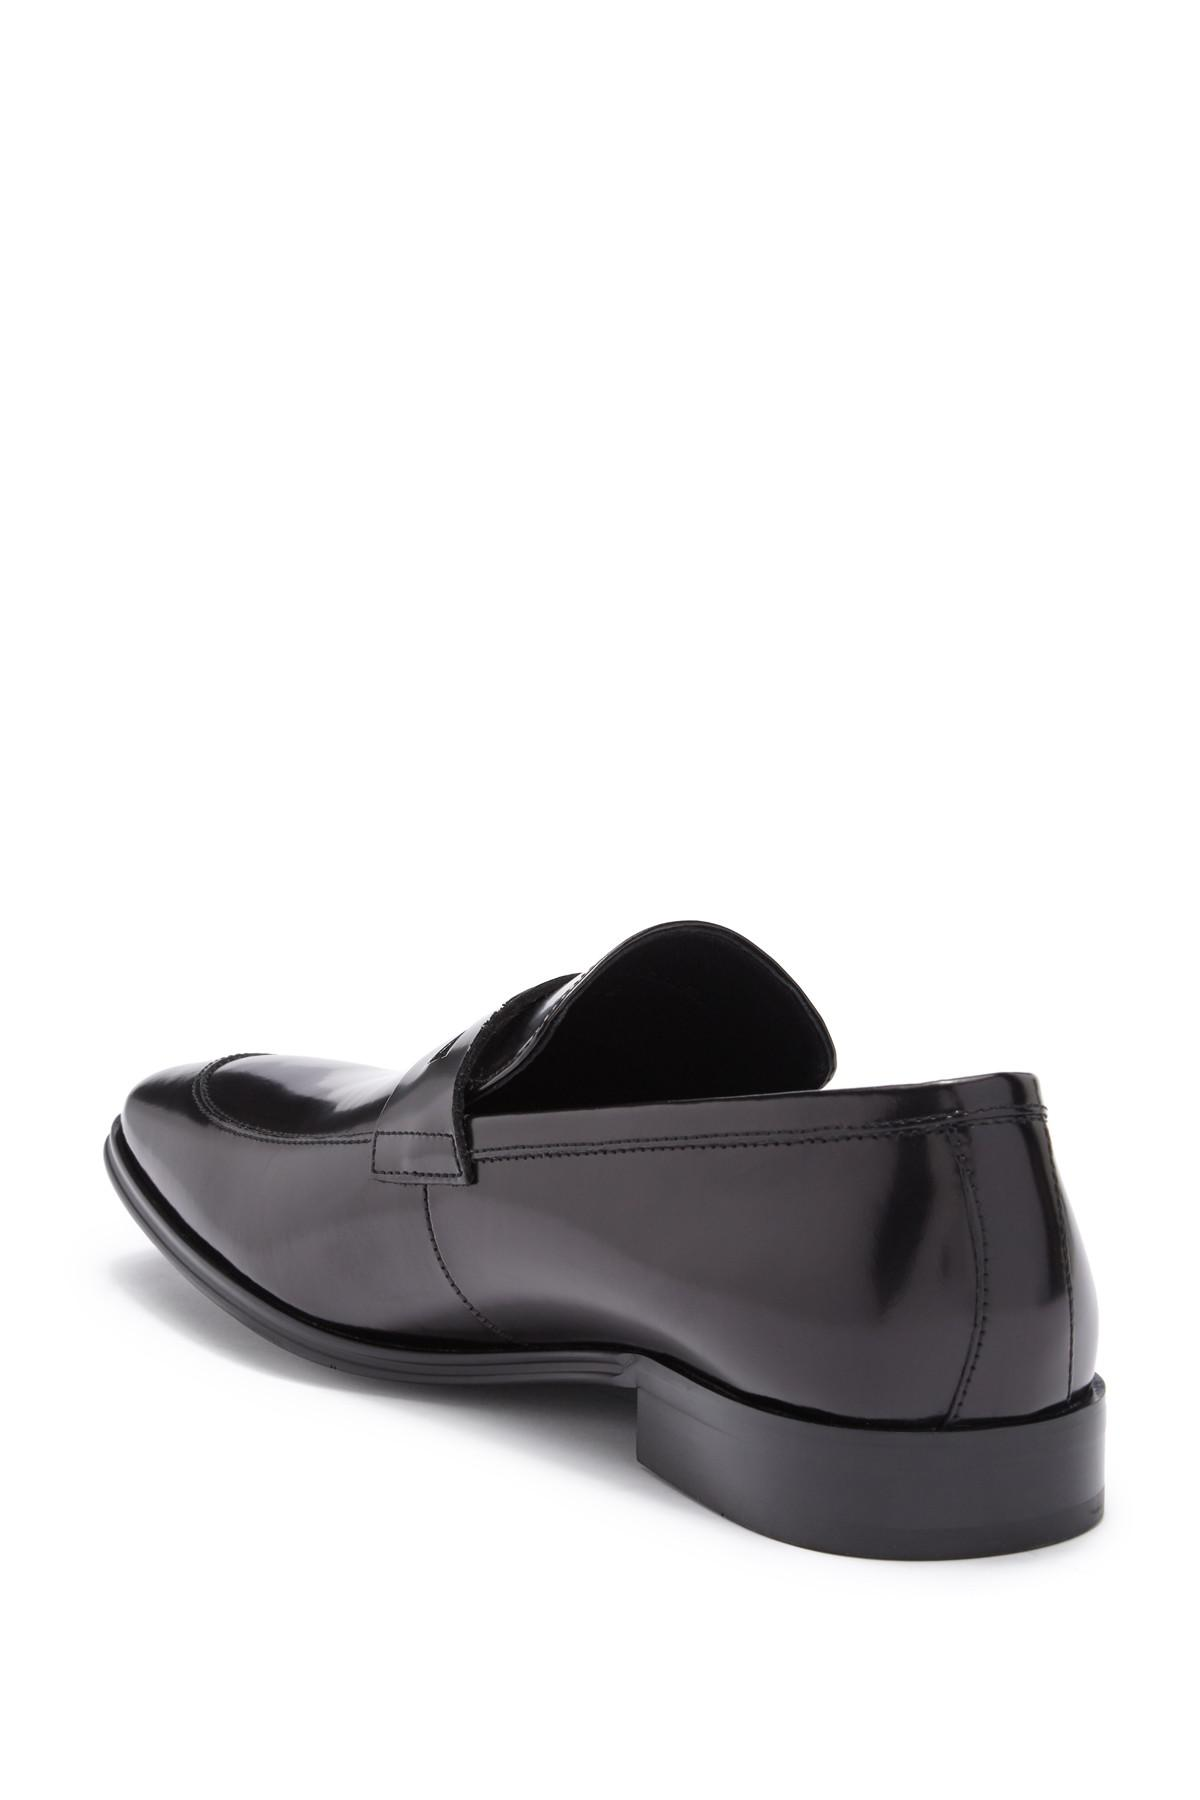 54b0b7f5a78 Gallery. Previously sold at  Nordstrom Rack · Men s Penny Loafers ...